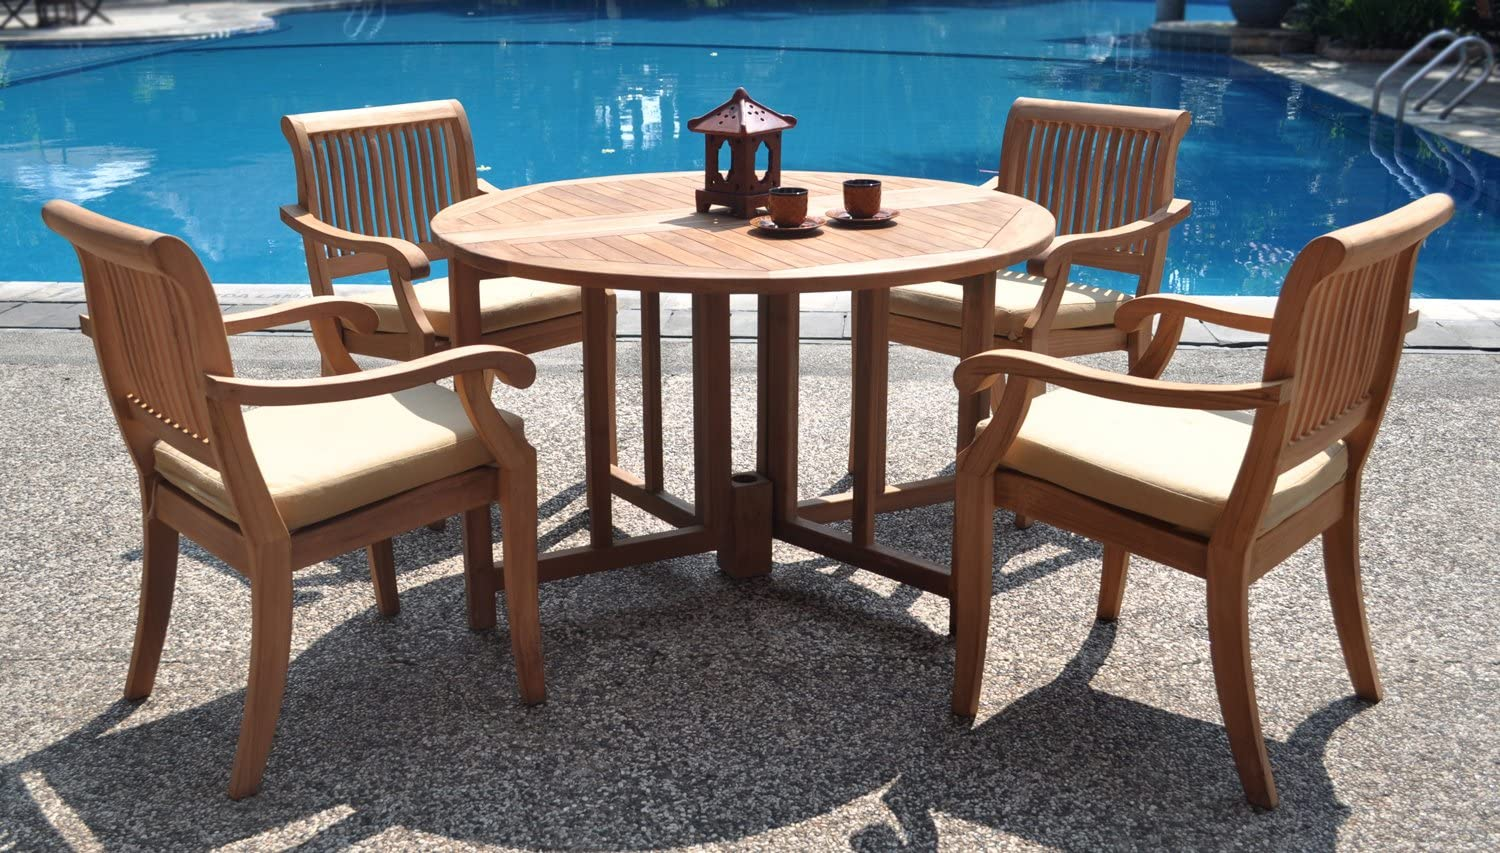 New 5 Pc Luxurious Grade-A Teak Dining Set 48 Round Butterfly Table and 4 Arbor Arm Stacking Chairs